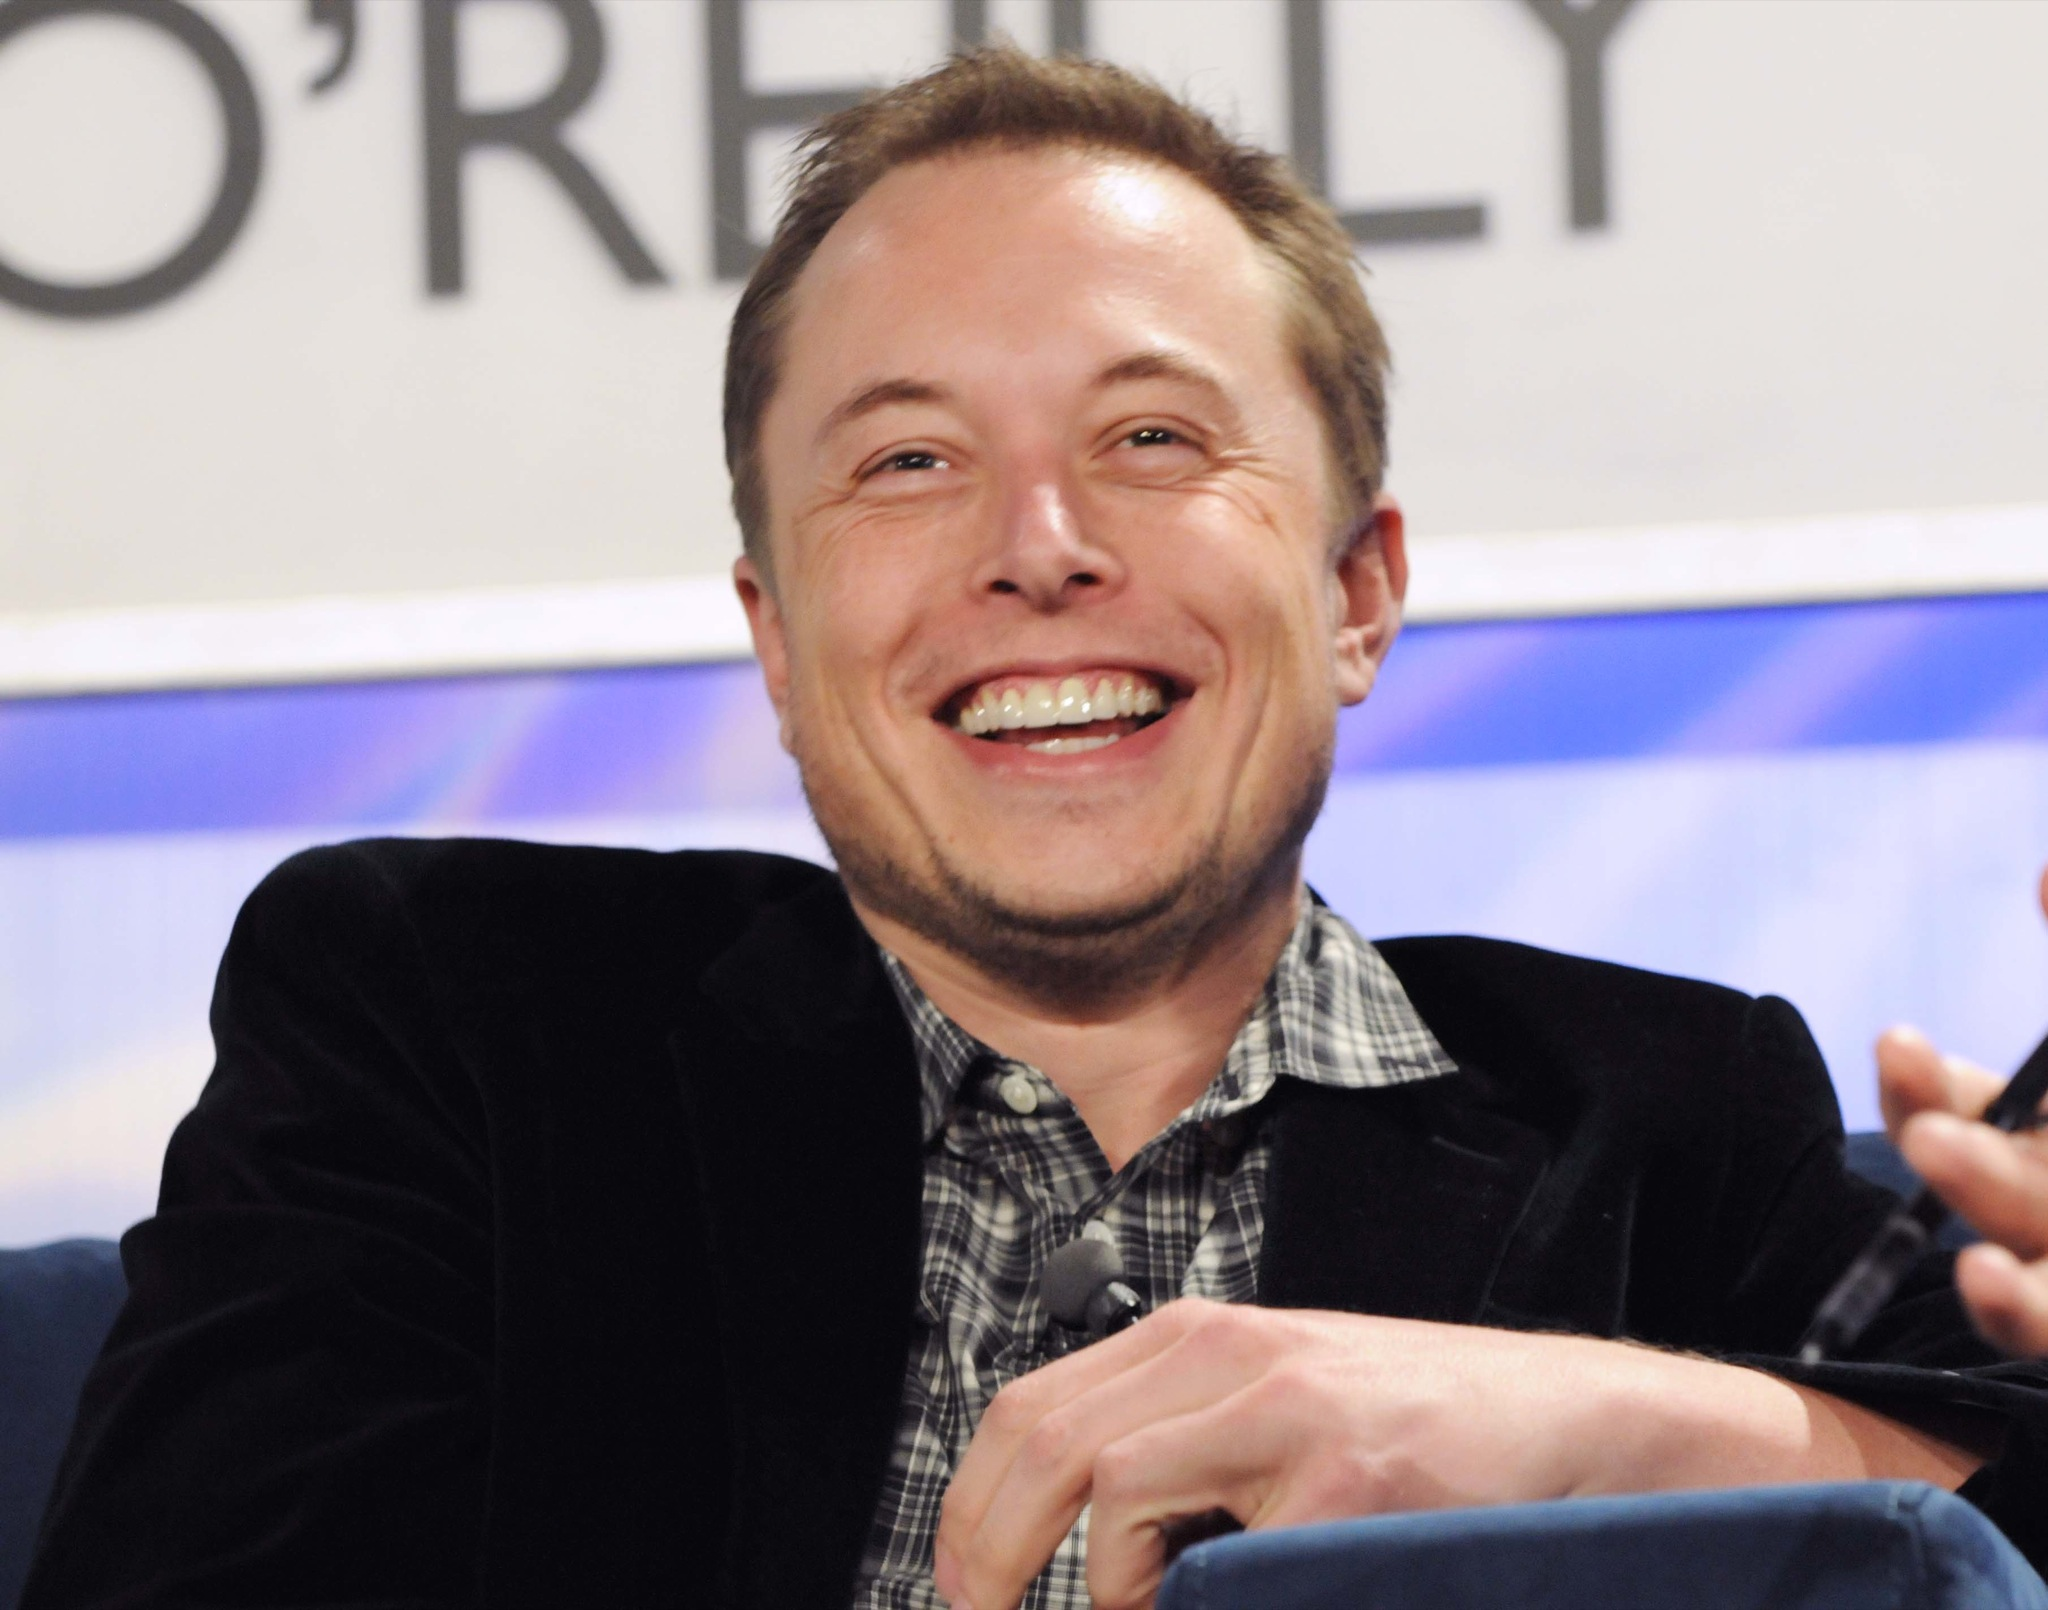 File:Elon Musk (3018710552).jpg - Wikimedia Commons